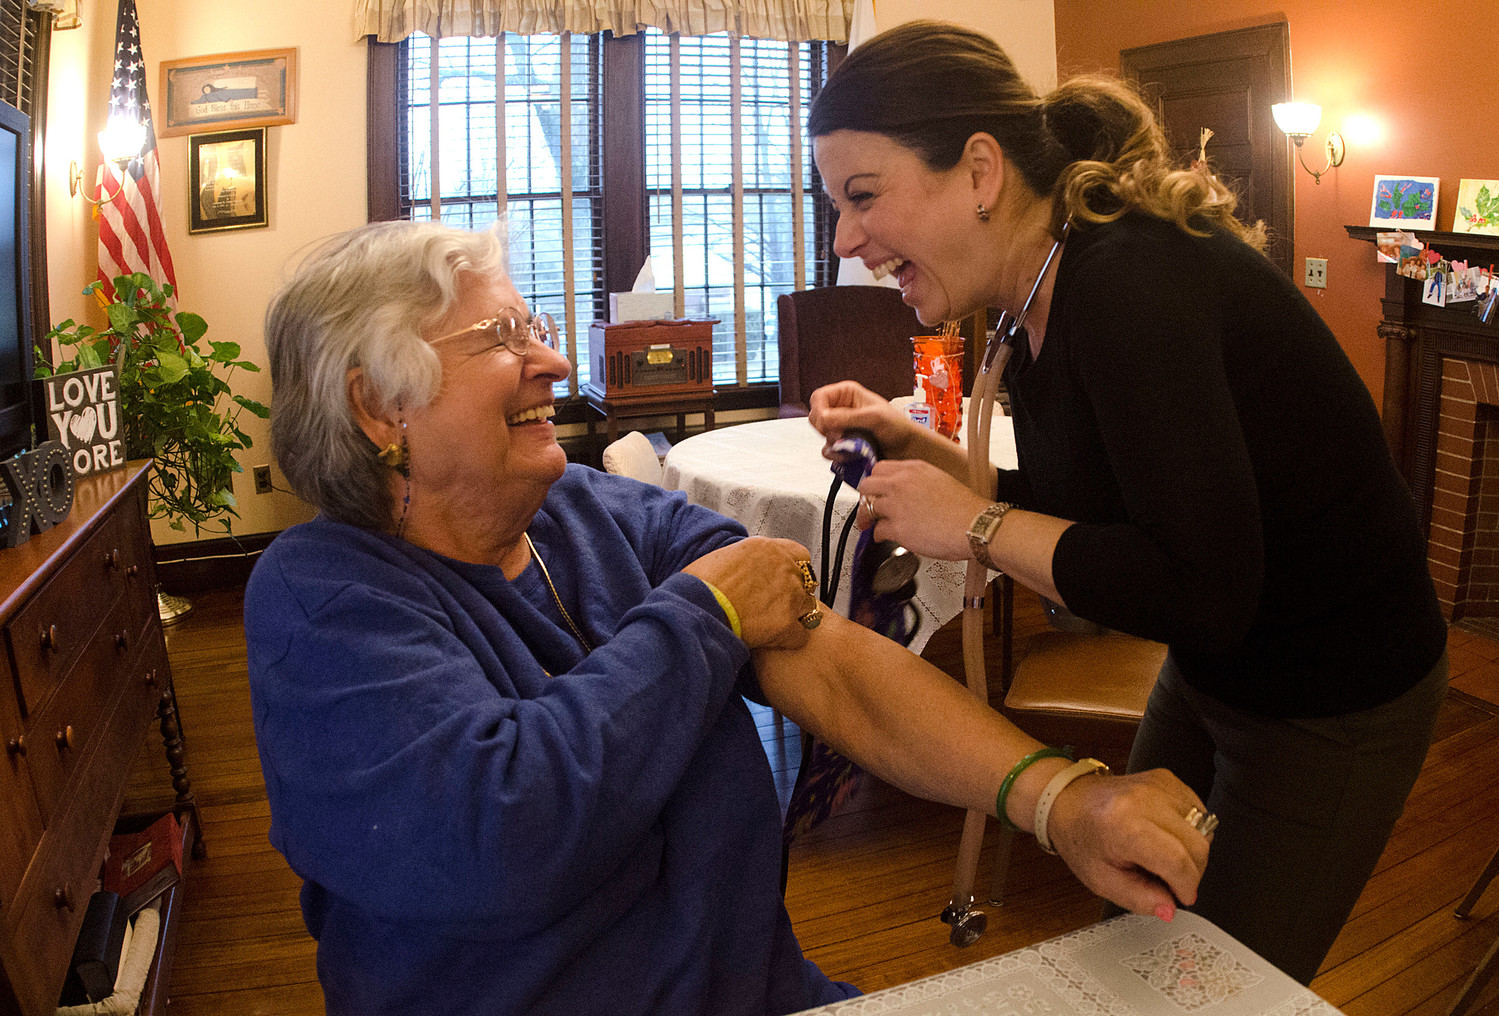 Maria Rodrigues (left) shares a laugh with registered nurse Paula Lage of Willows at Grace Barker during a blood pressure screening before lunch at the Benjamin Church Senior Center.